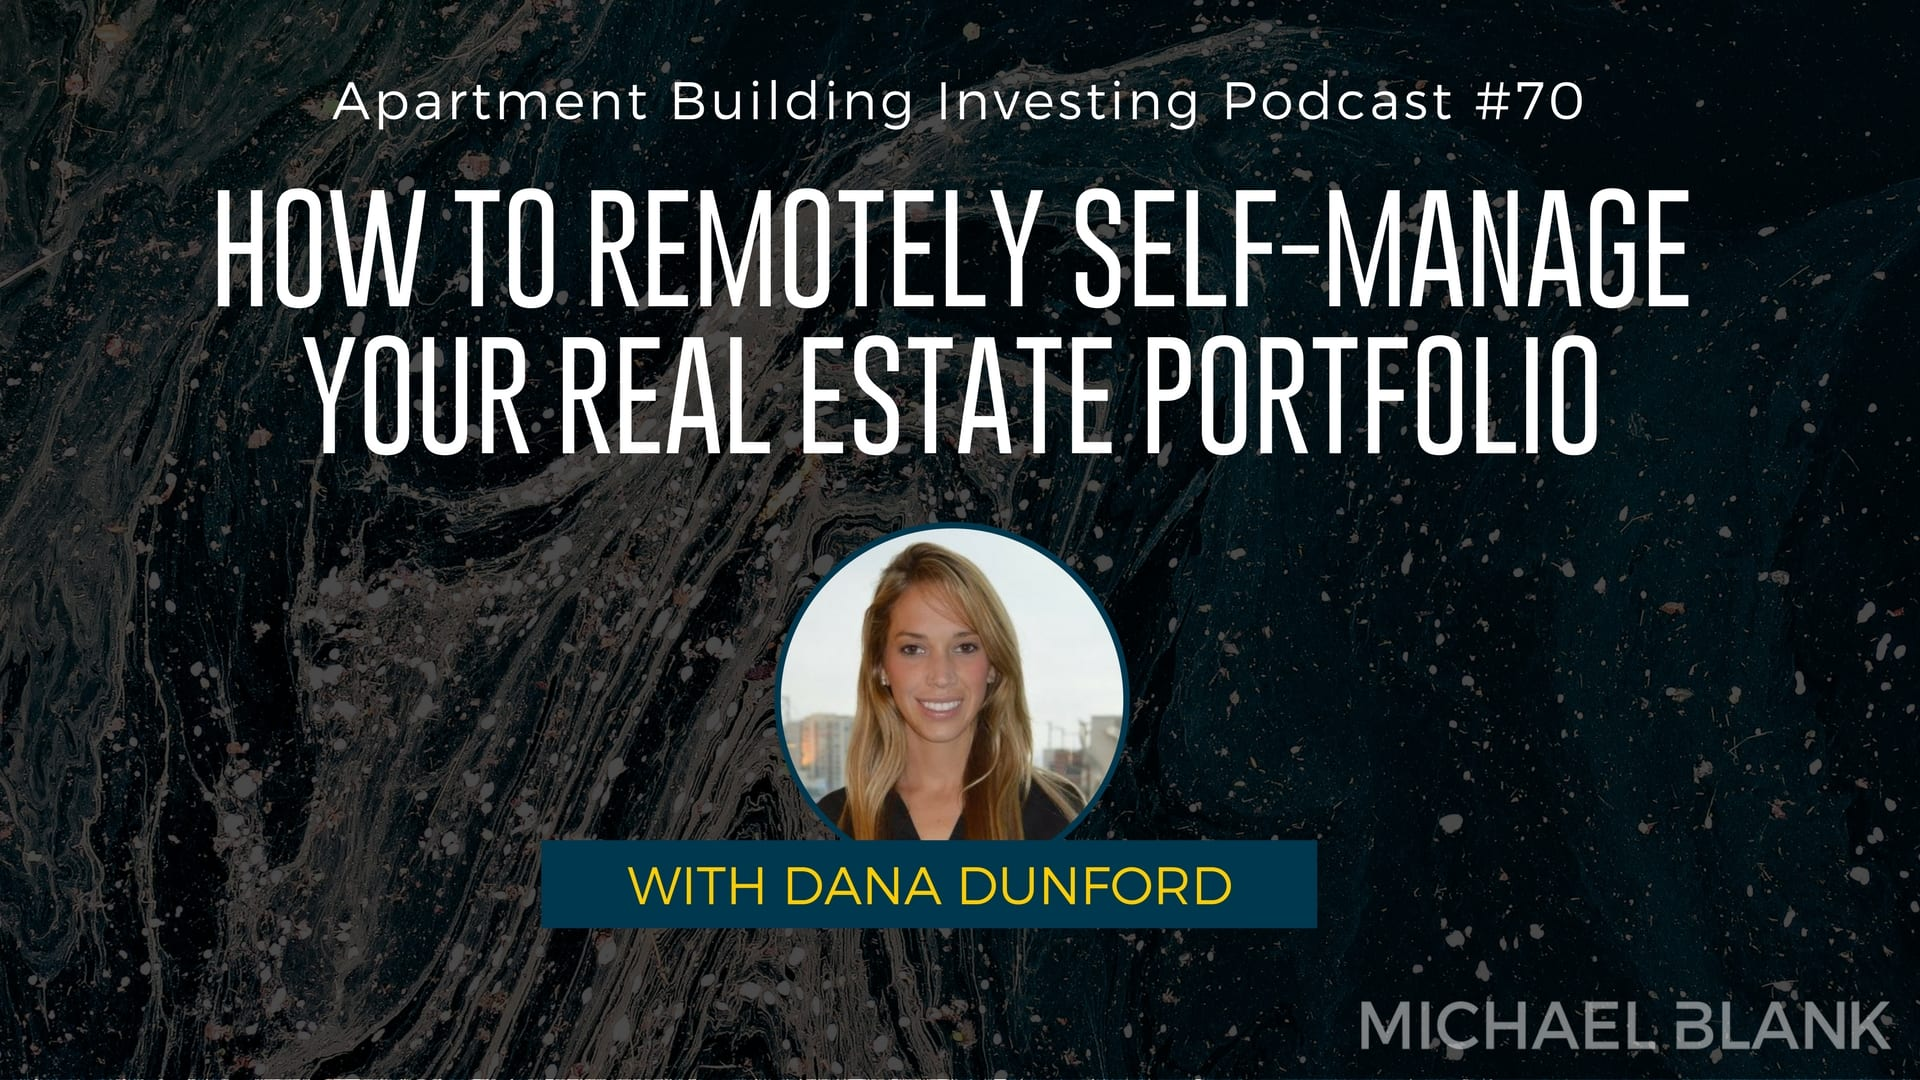 MB 070: How to Remotely Self-Manage Your Real Estate Portfolio – With Dana Dunford